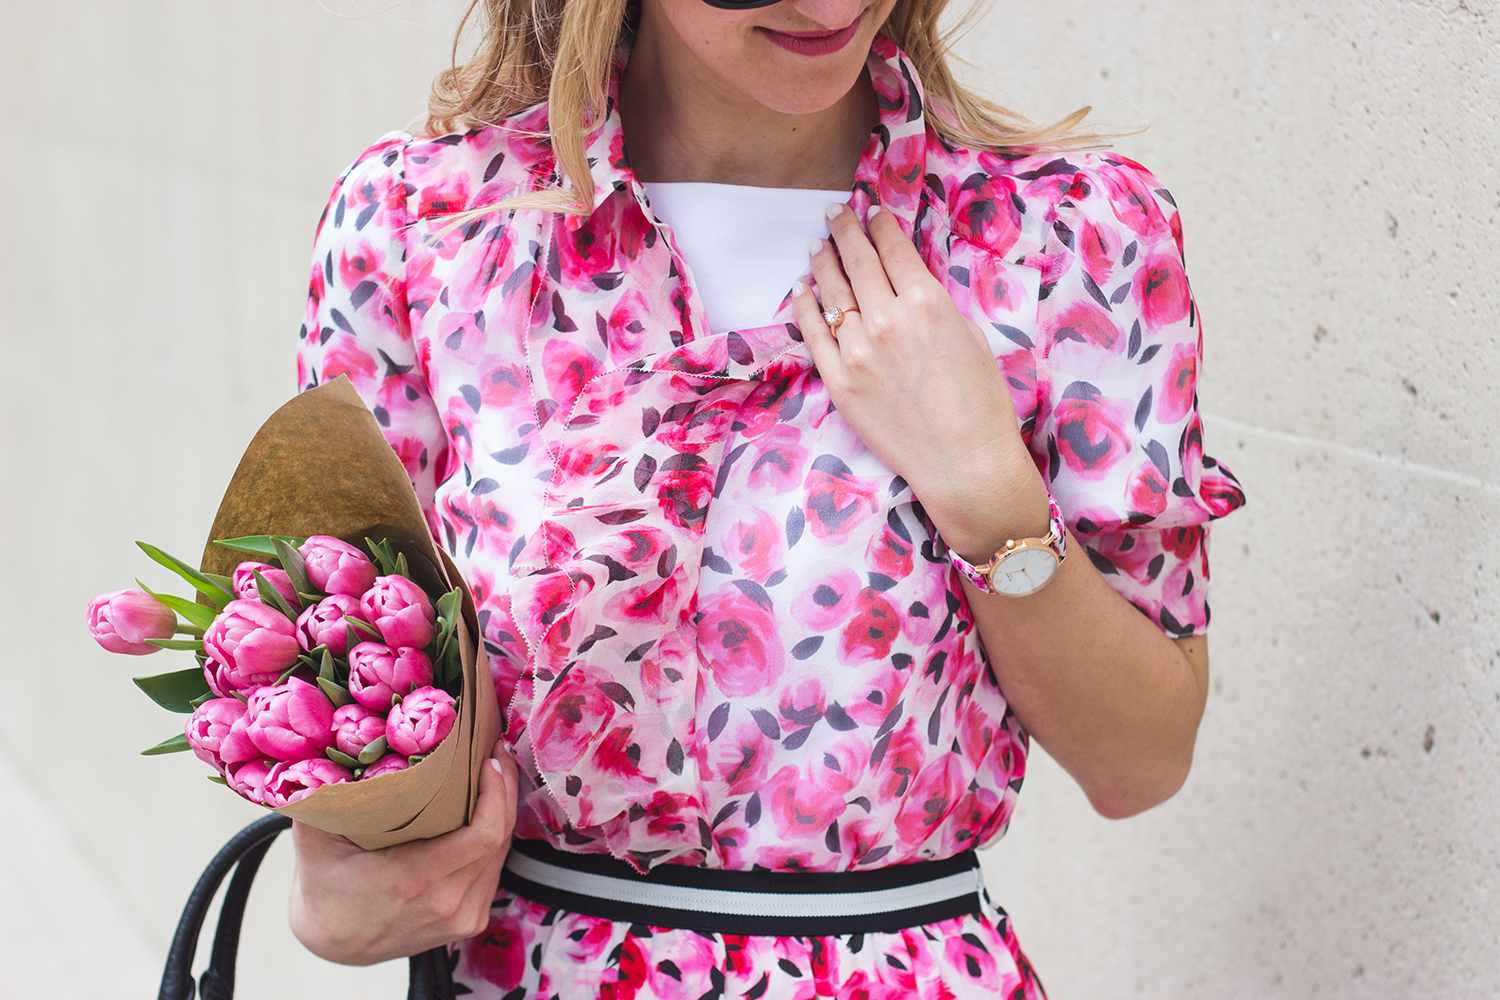 livvyland-blog-olivia-watson-austin-texas-fashion-blogger-kate-spade-broome-street-everyday-tee-white-rose-pleated-skirt-pink-black-spring-outfit-14